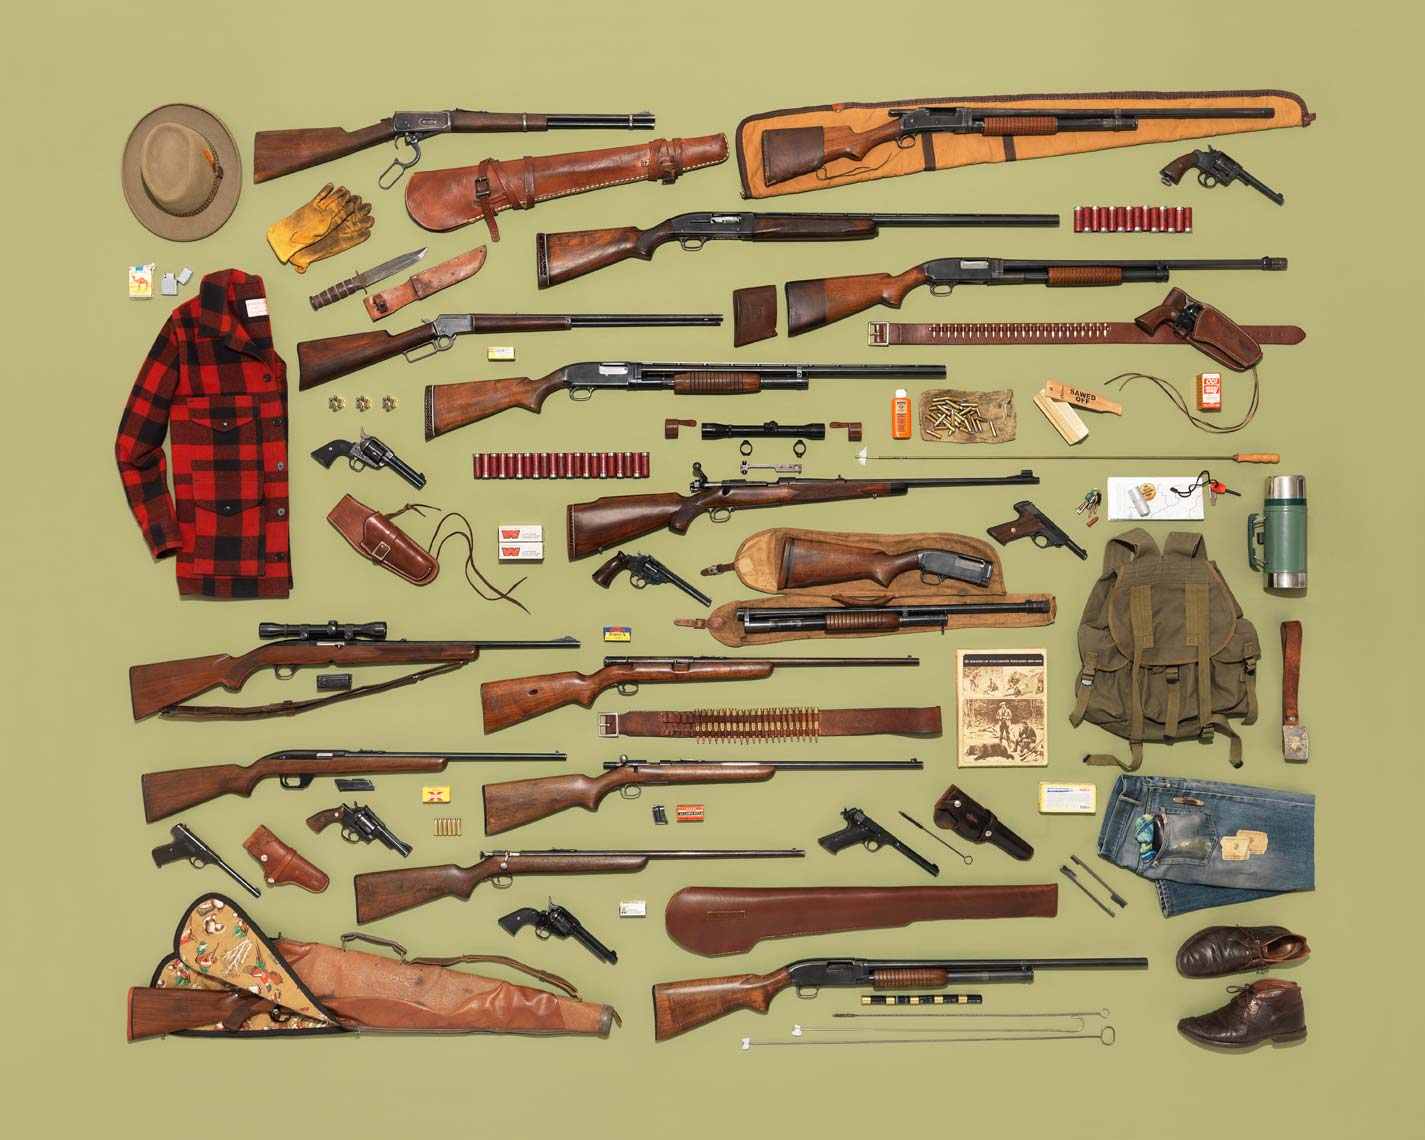 vintage rifle and hunting gear collection